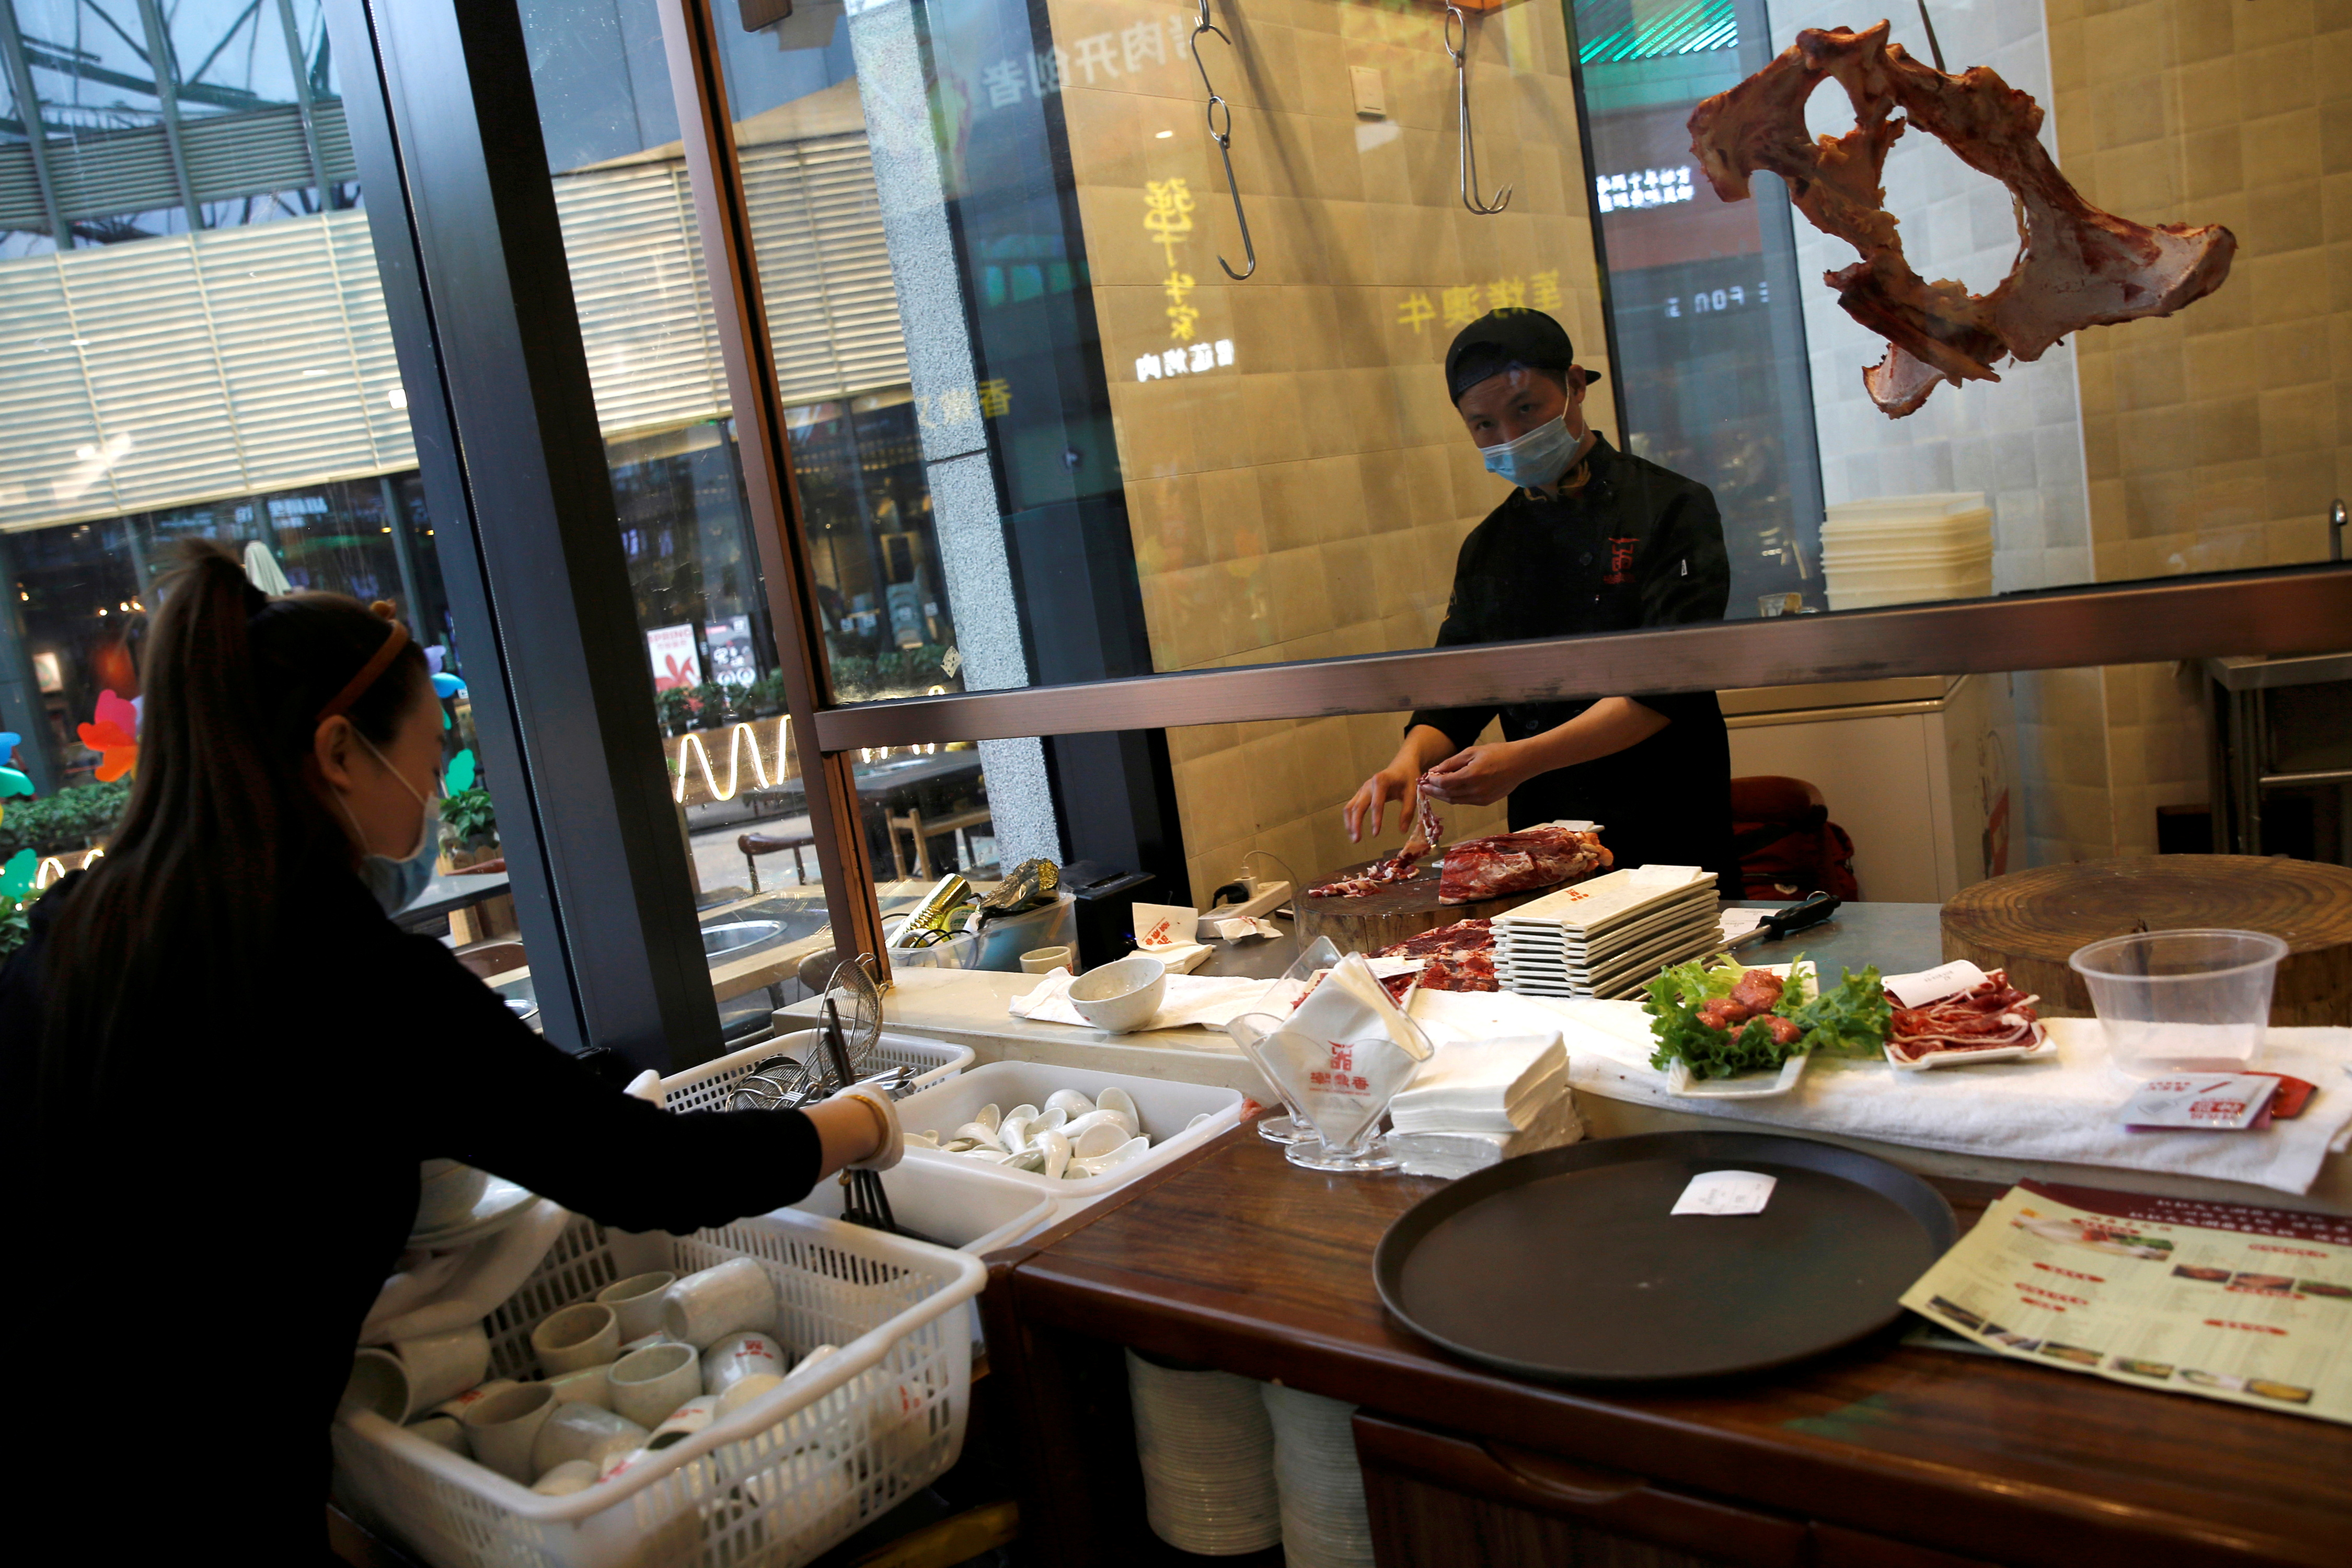 A chef wearing a face mask prepares beef as a waitress sorts tableware at a beef hotpot restaurant in Beijing, amid an outbreak of the novel coronavirus disease (COVID-19) in the country, China April 7, 2020. REUTERS/Tingshu Wang/File Photo